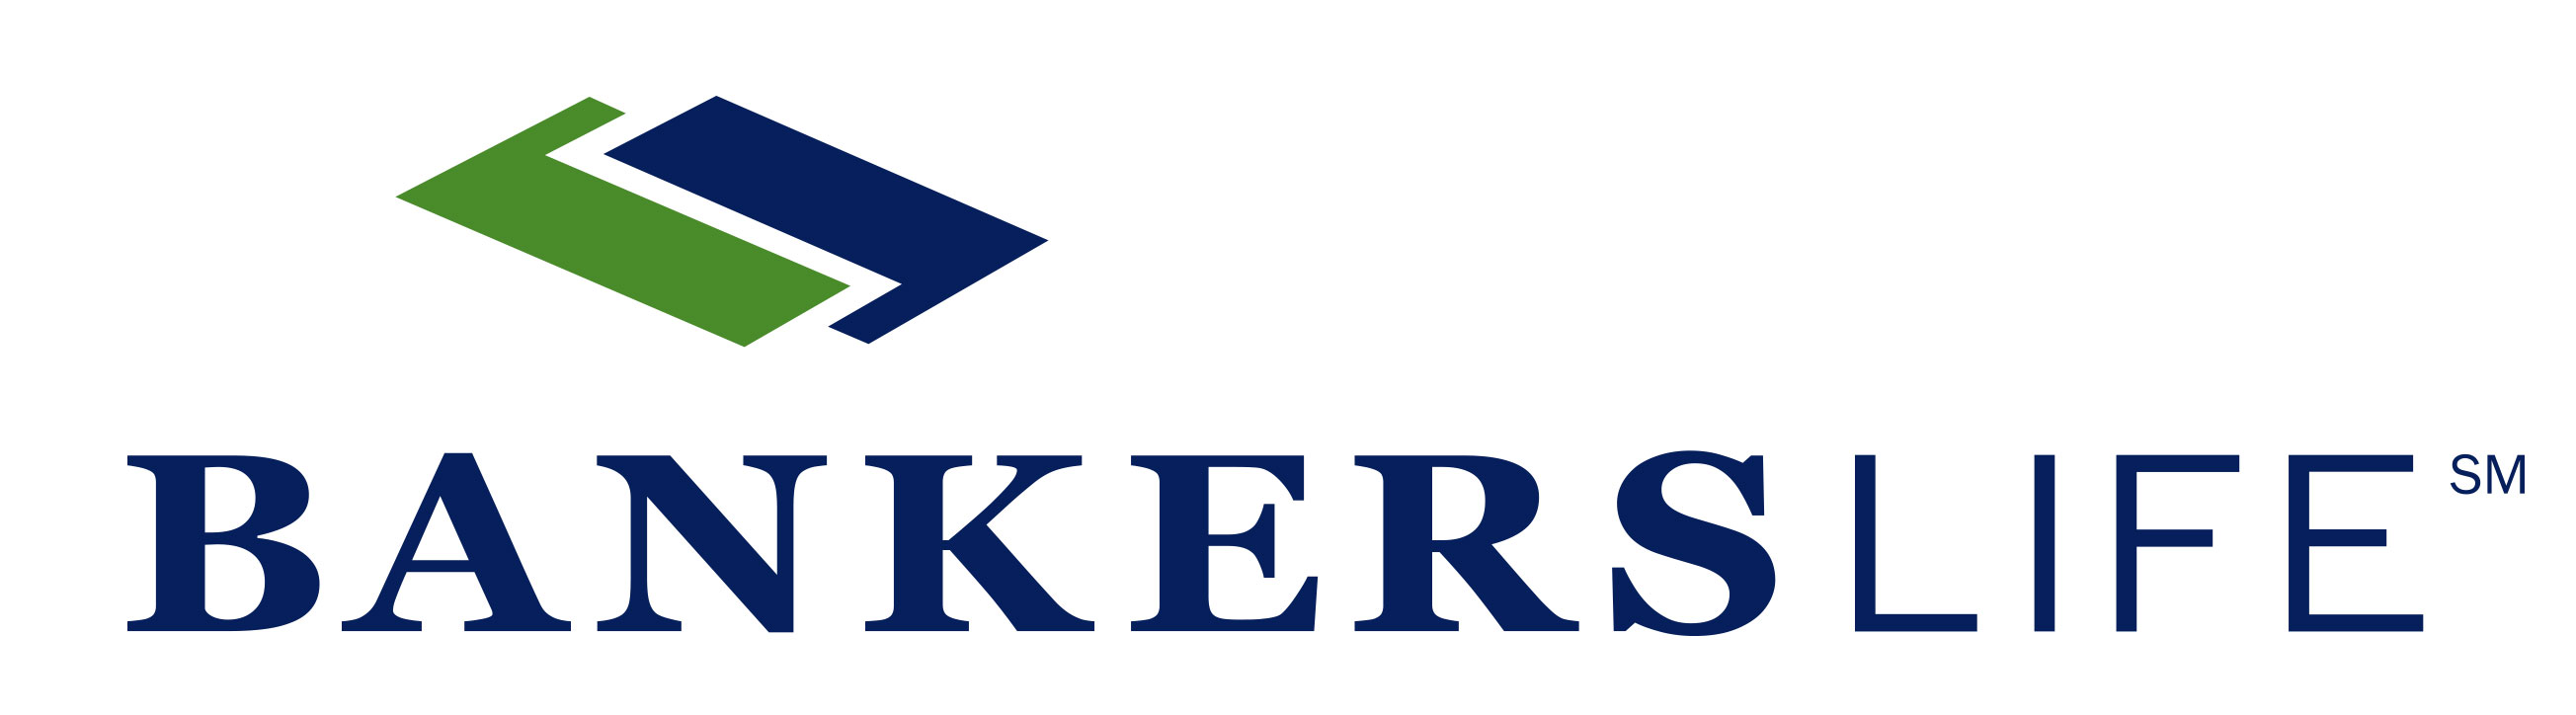 bankers insurance company photo - 1